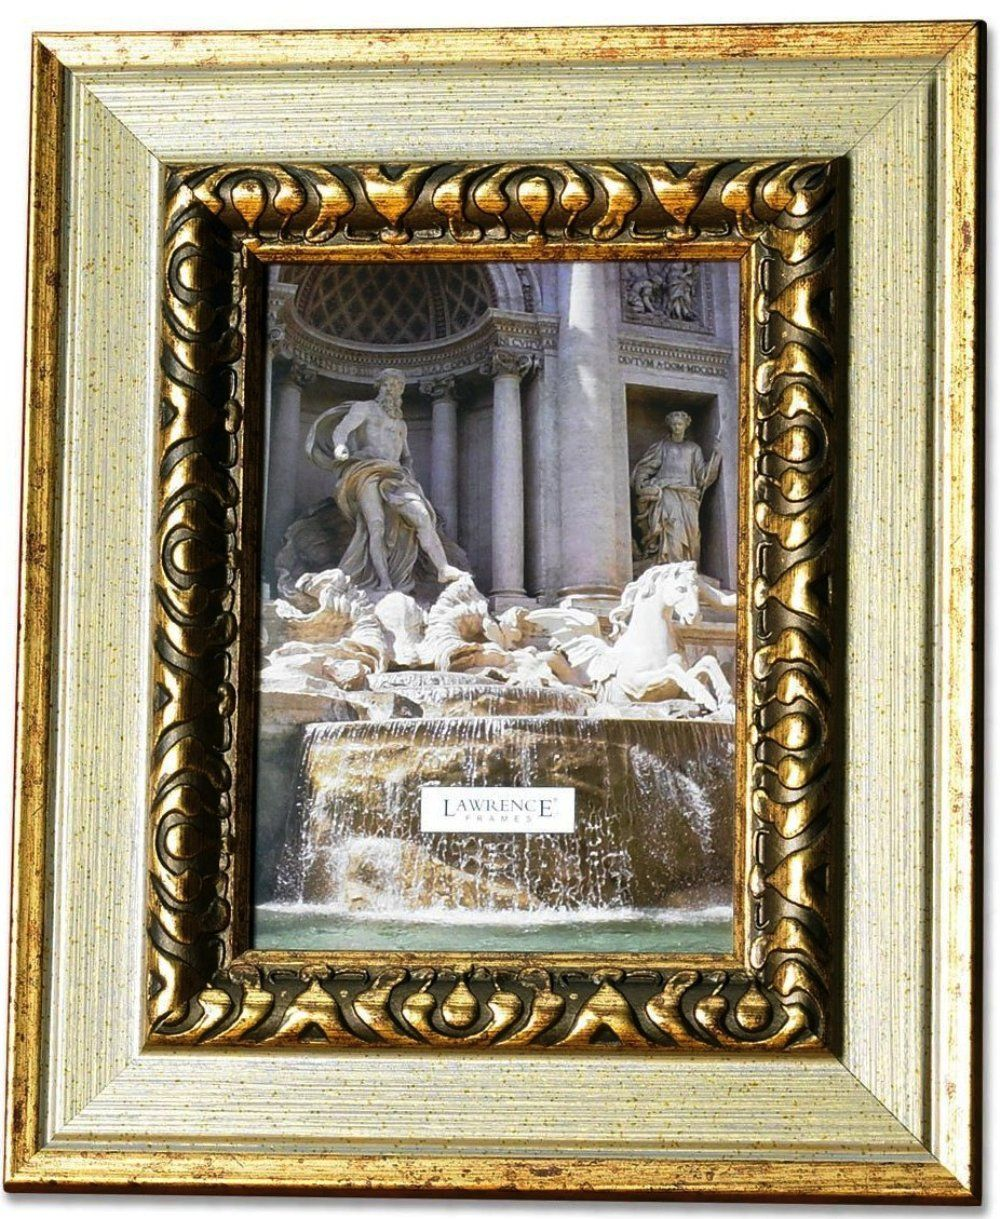 Old picture frames carved antique silver and gold 8x10 picture old picture frames carved antique silver and gold 8x10 picture frame jeuxipadfo Image collections